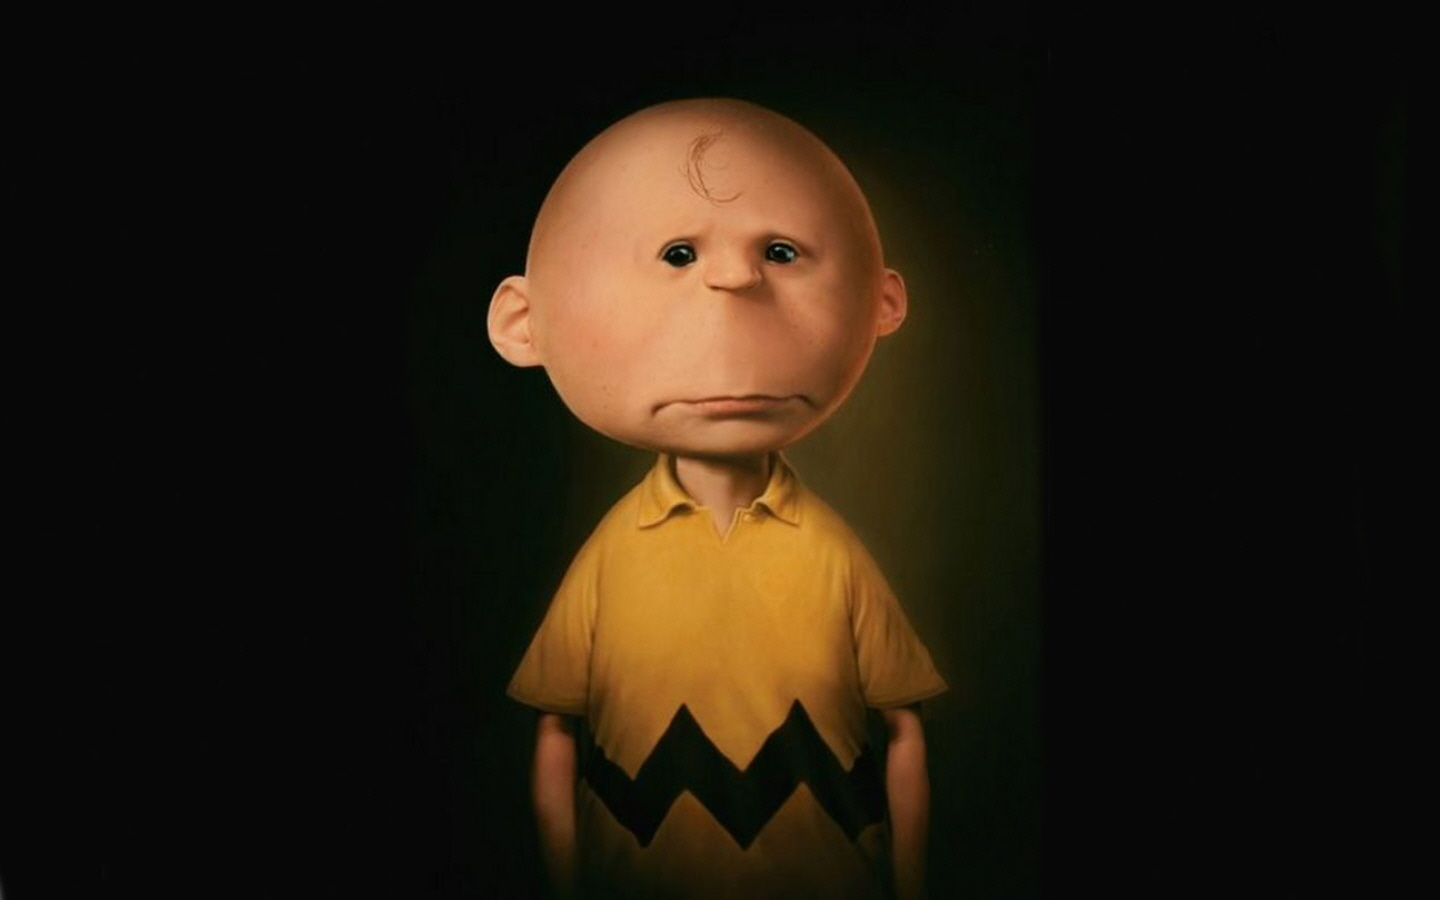 Charlie Brown 3D wallpaper   ForWallpapercom 1440x900